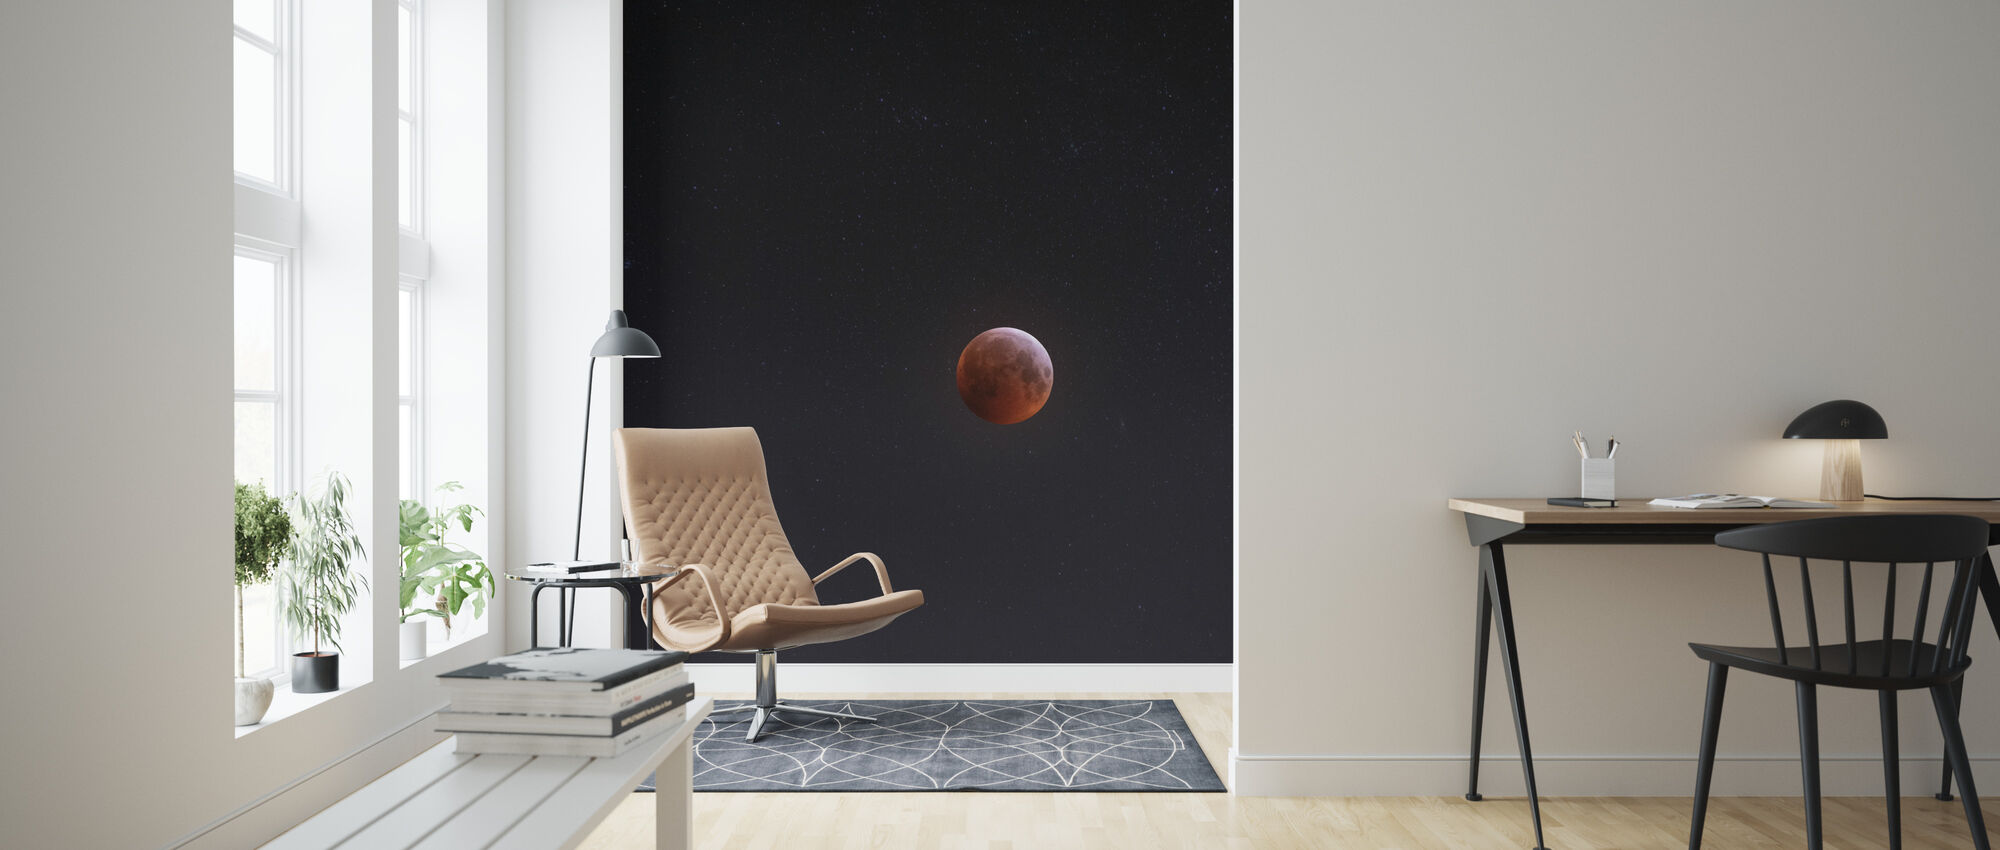 Lunar Eclipse - Wallpaper - Living Room